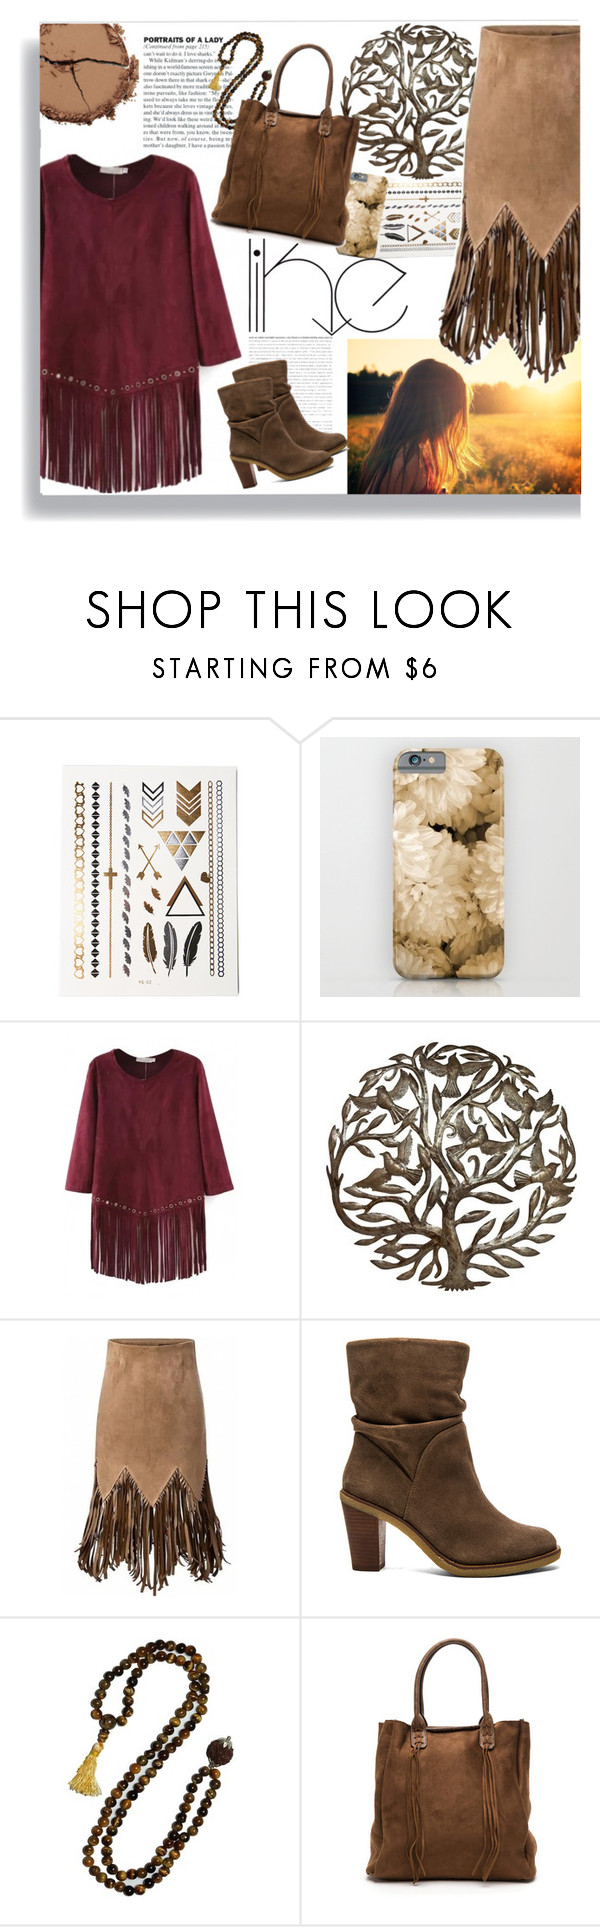 """""""fringes _ Beautiful Halo"""" by by-jwp ❤ liked on Polyvore featuring мода, Vince Camuto, Chantecaille и beautifulhalo"""